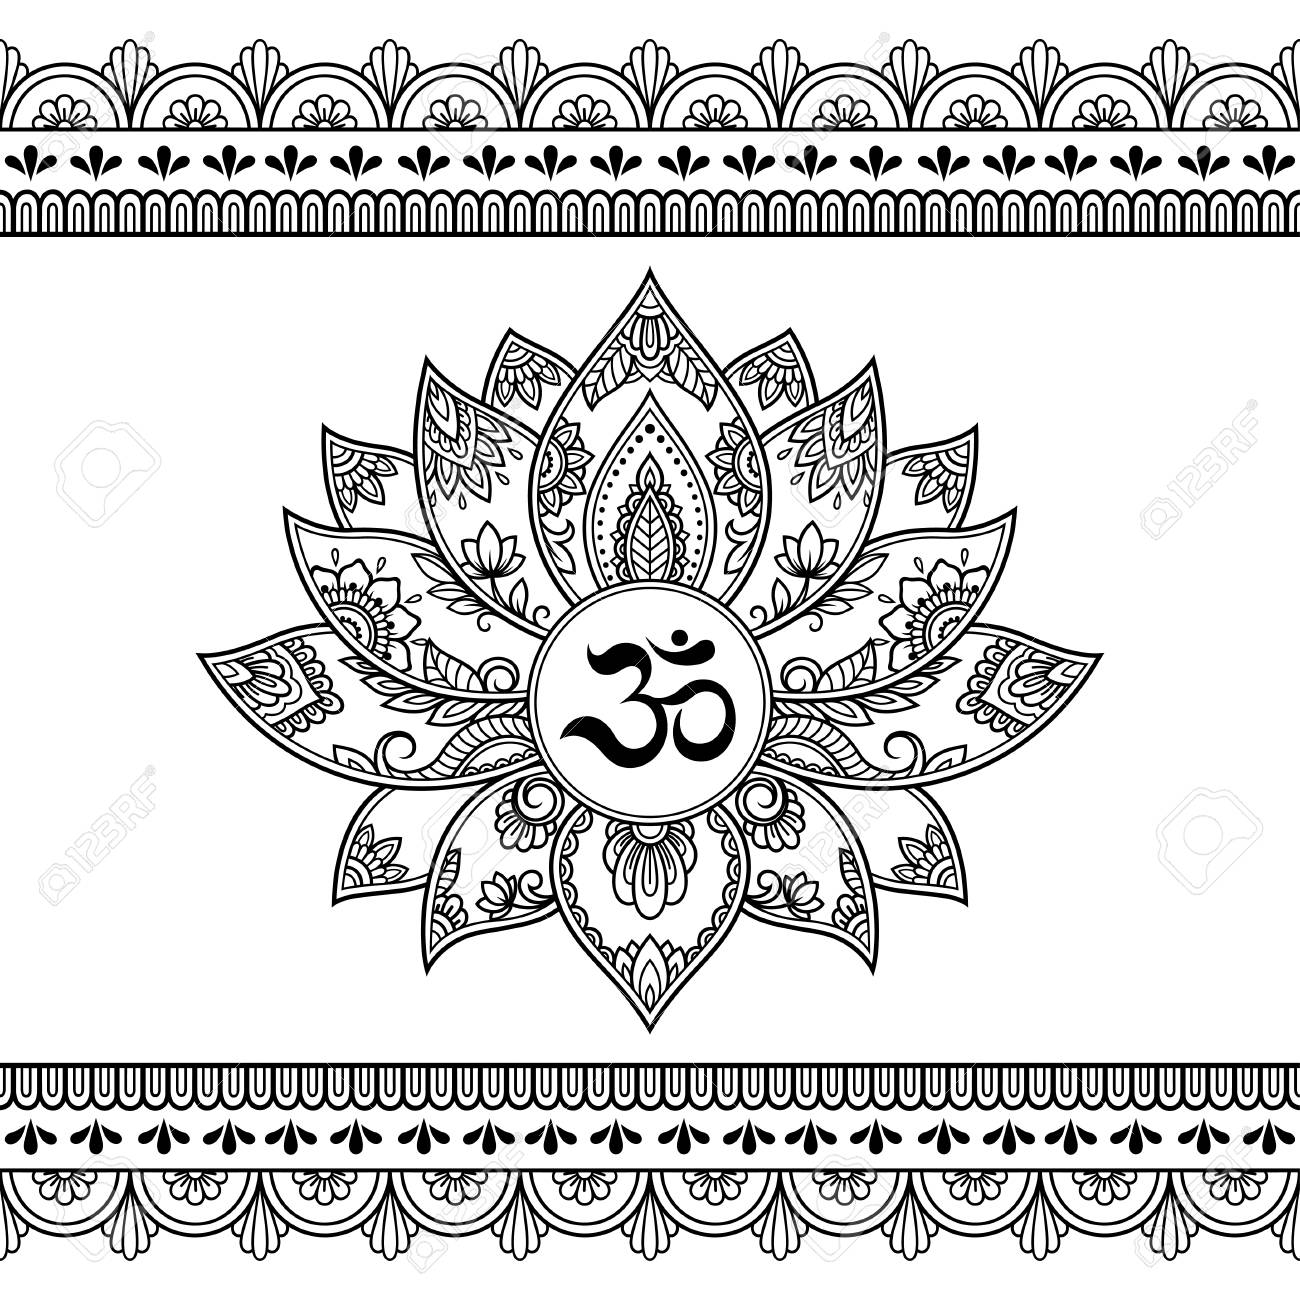 b6c23f26b Mehndi Lotus flower pattern with mantra OM symbol and seamless border for Henna  drawing and tattoo